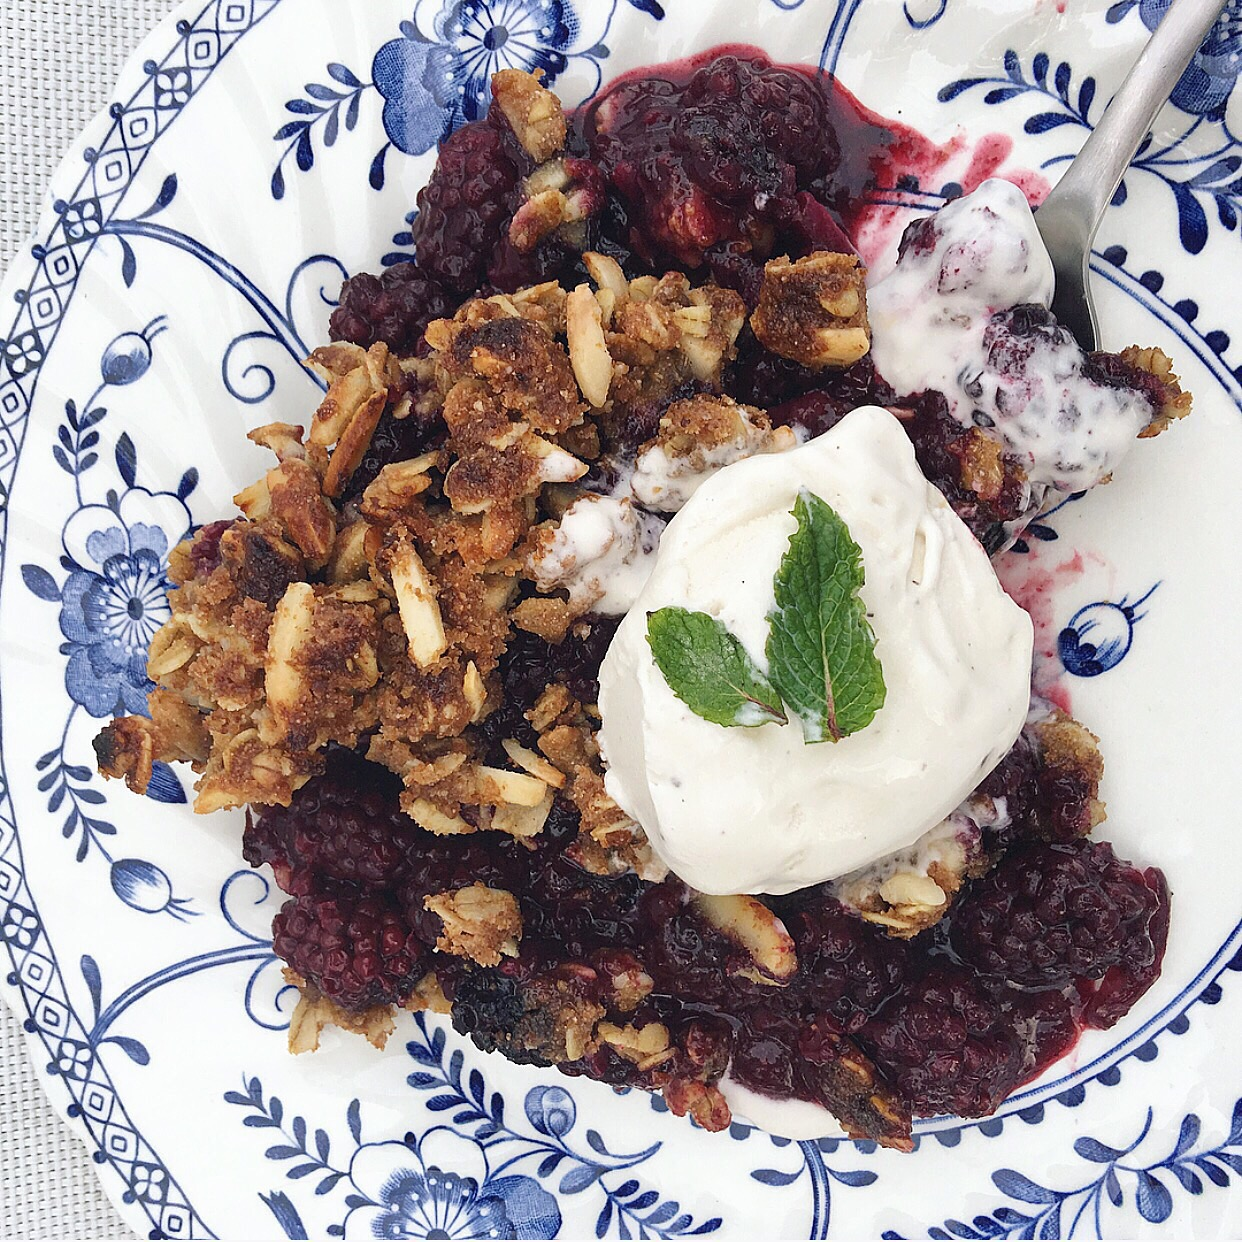 Lemon-Thyme Blackberry Crumble